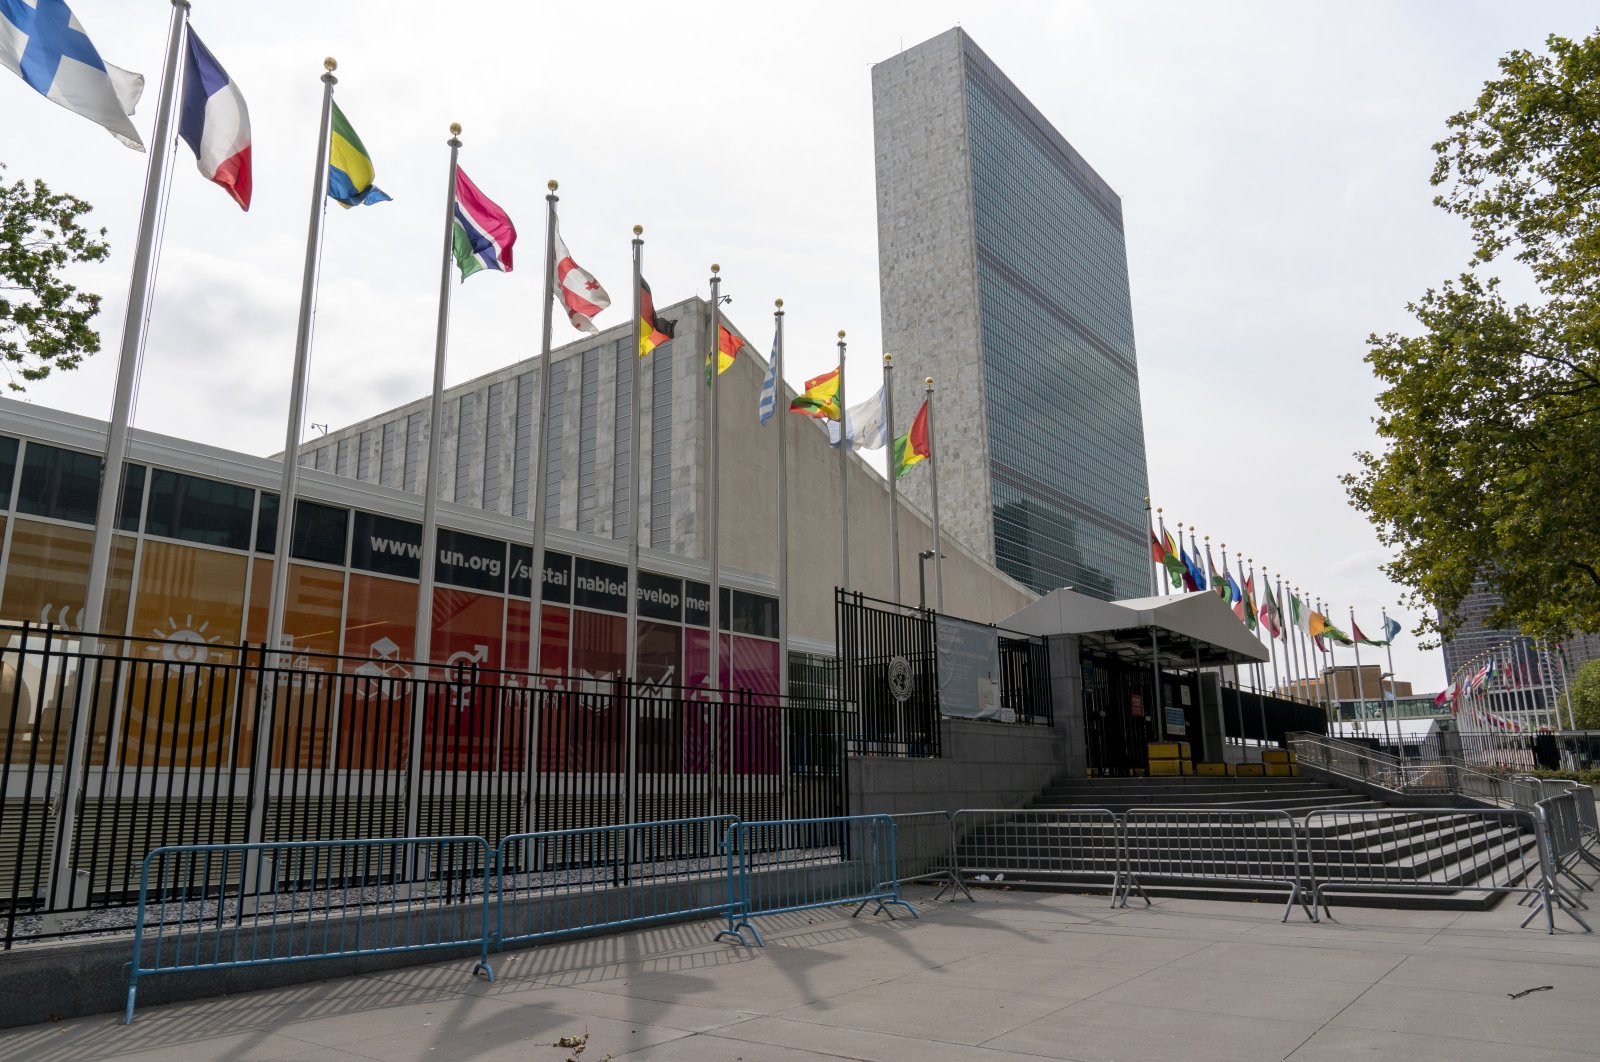 Metal barricades line the shuttered main entrance to the United Nations headquarters in New York City, New York, U.S., Sept. 18, 2020. (AP Photo)